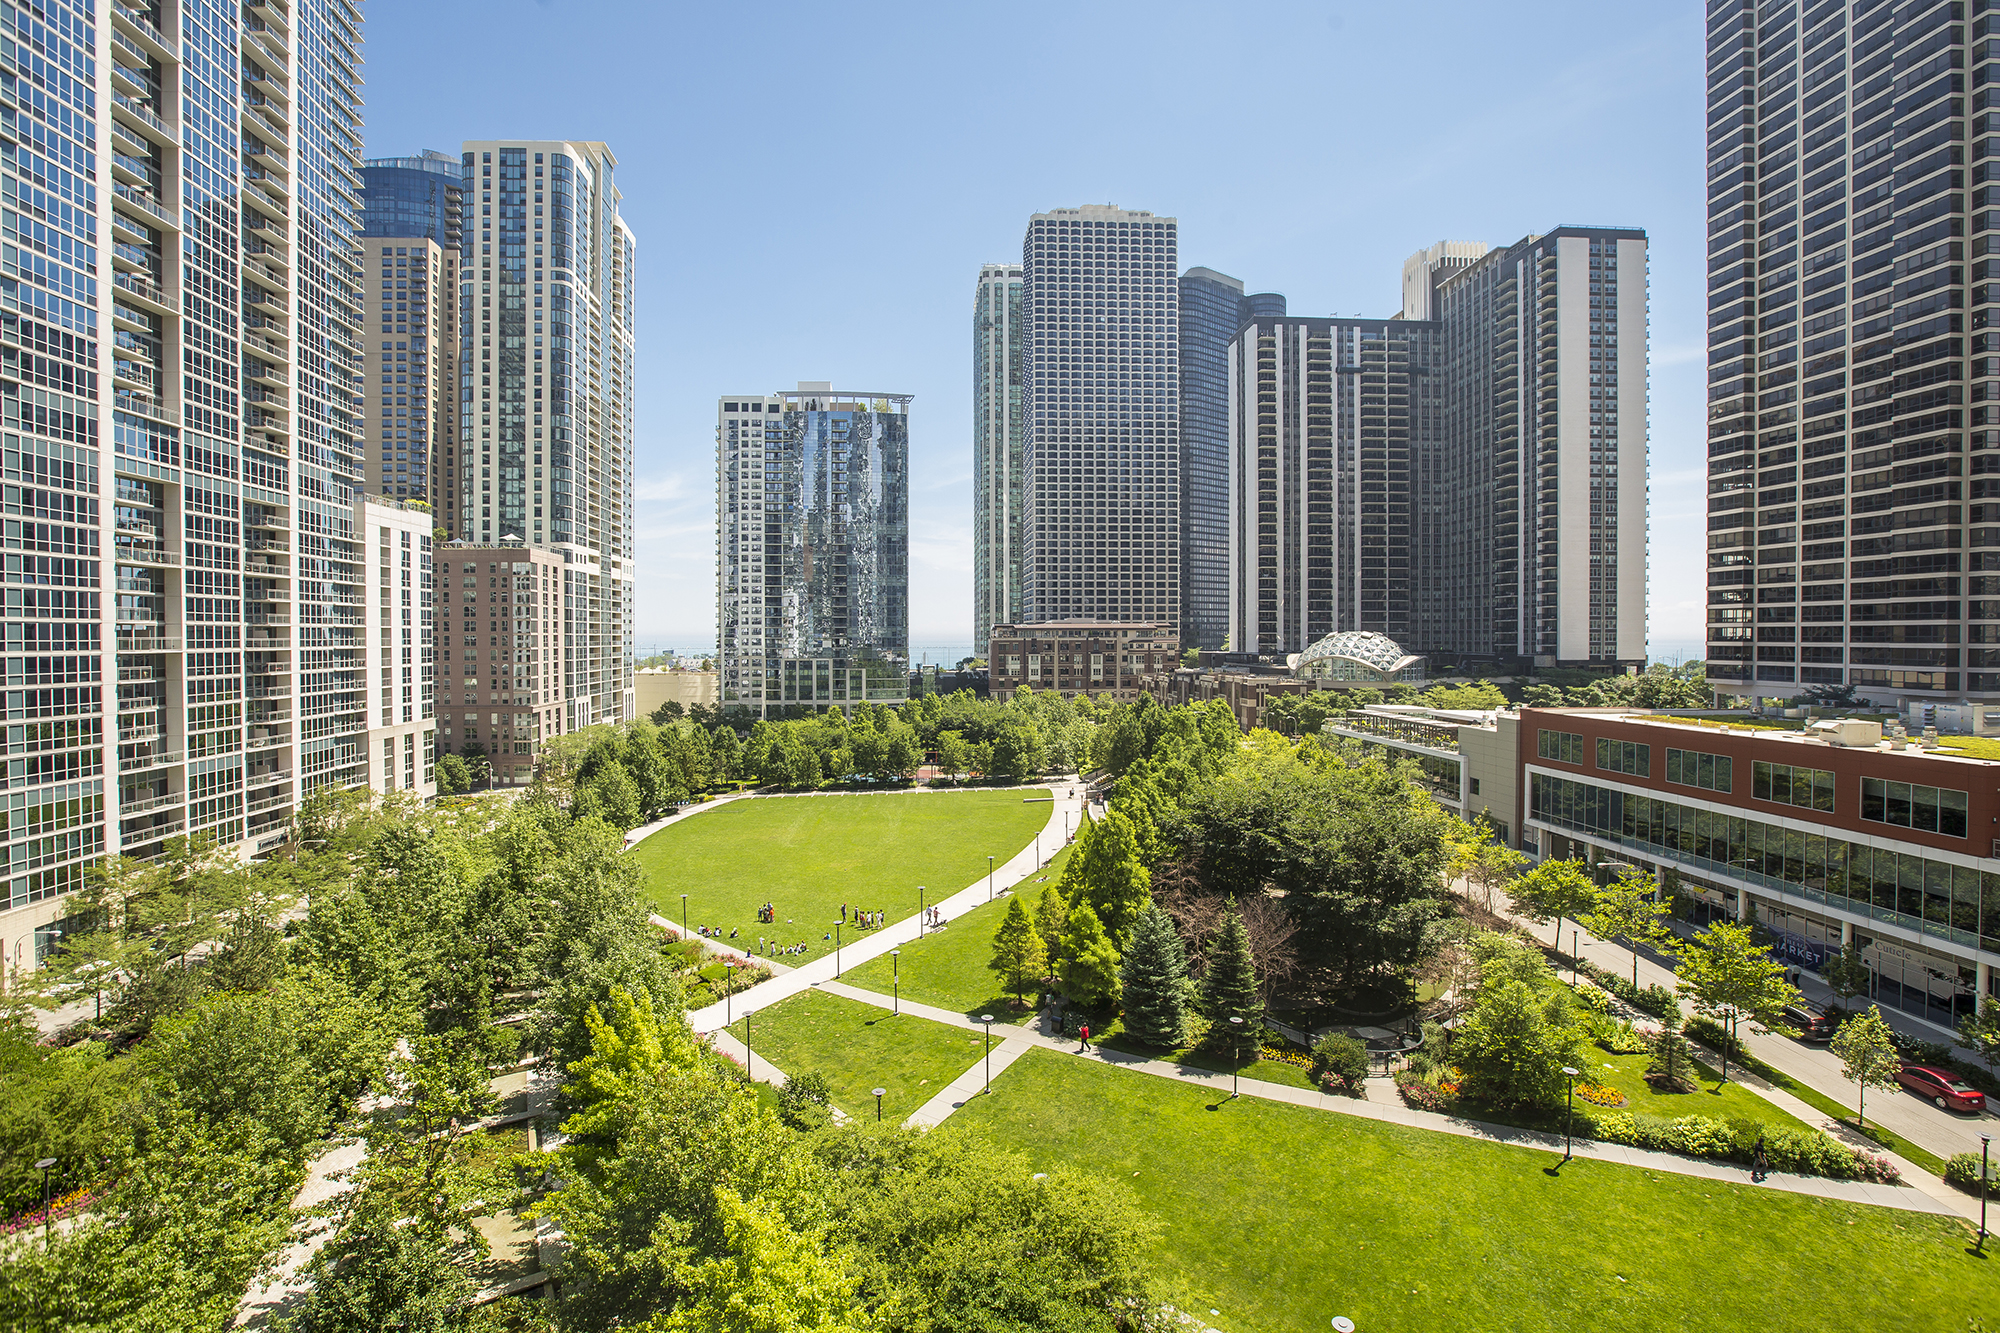 Image of Chicago attractions reopening in Lakeshore East neighborhood